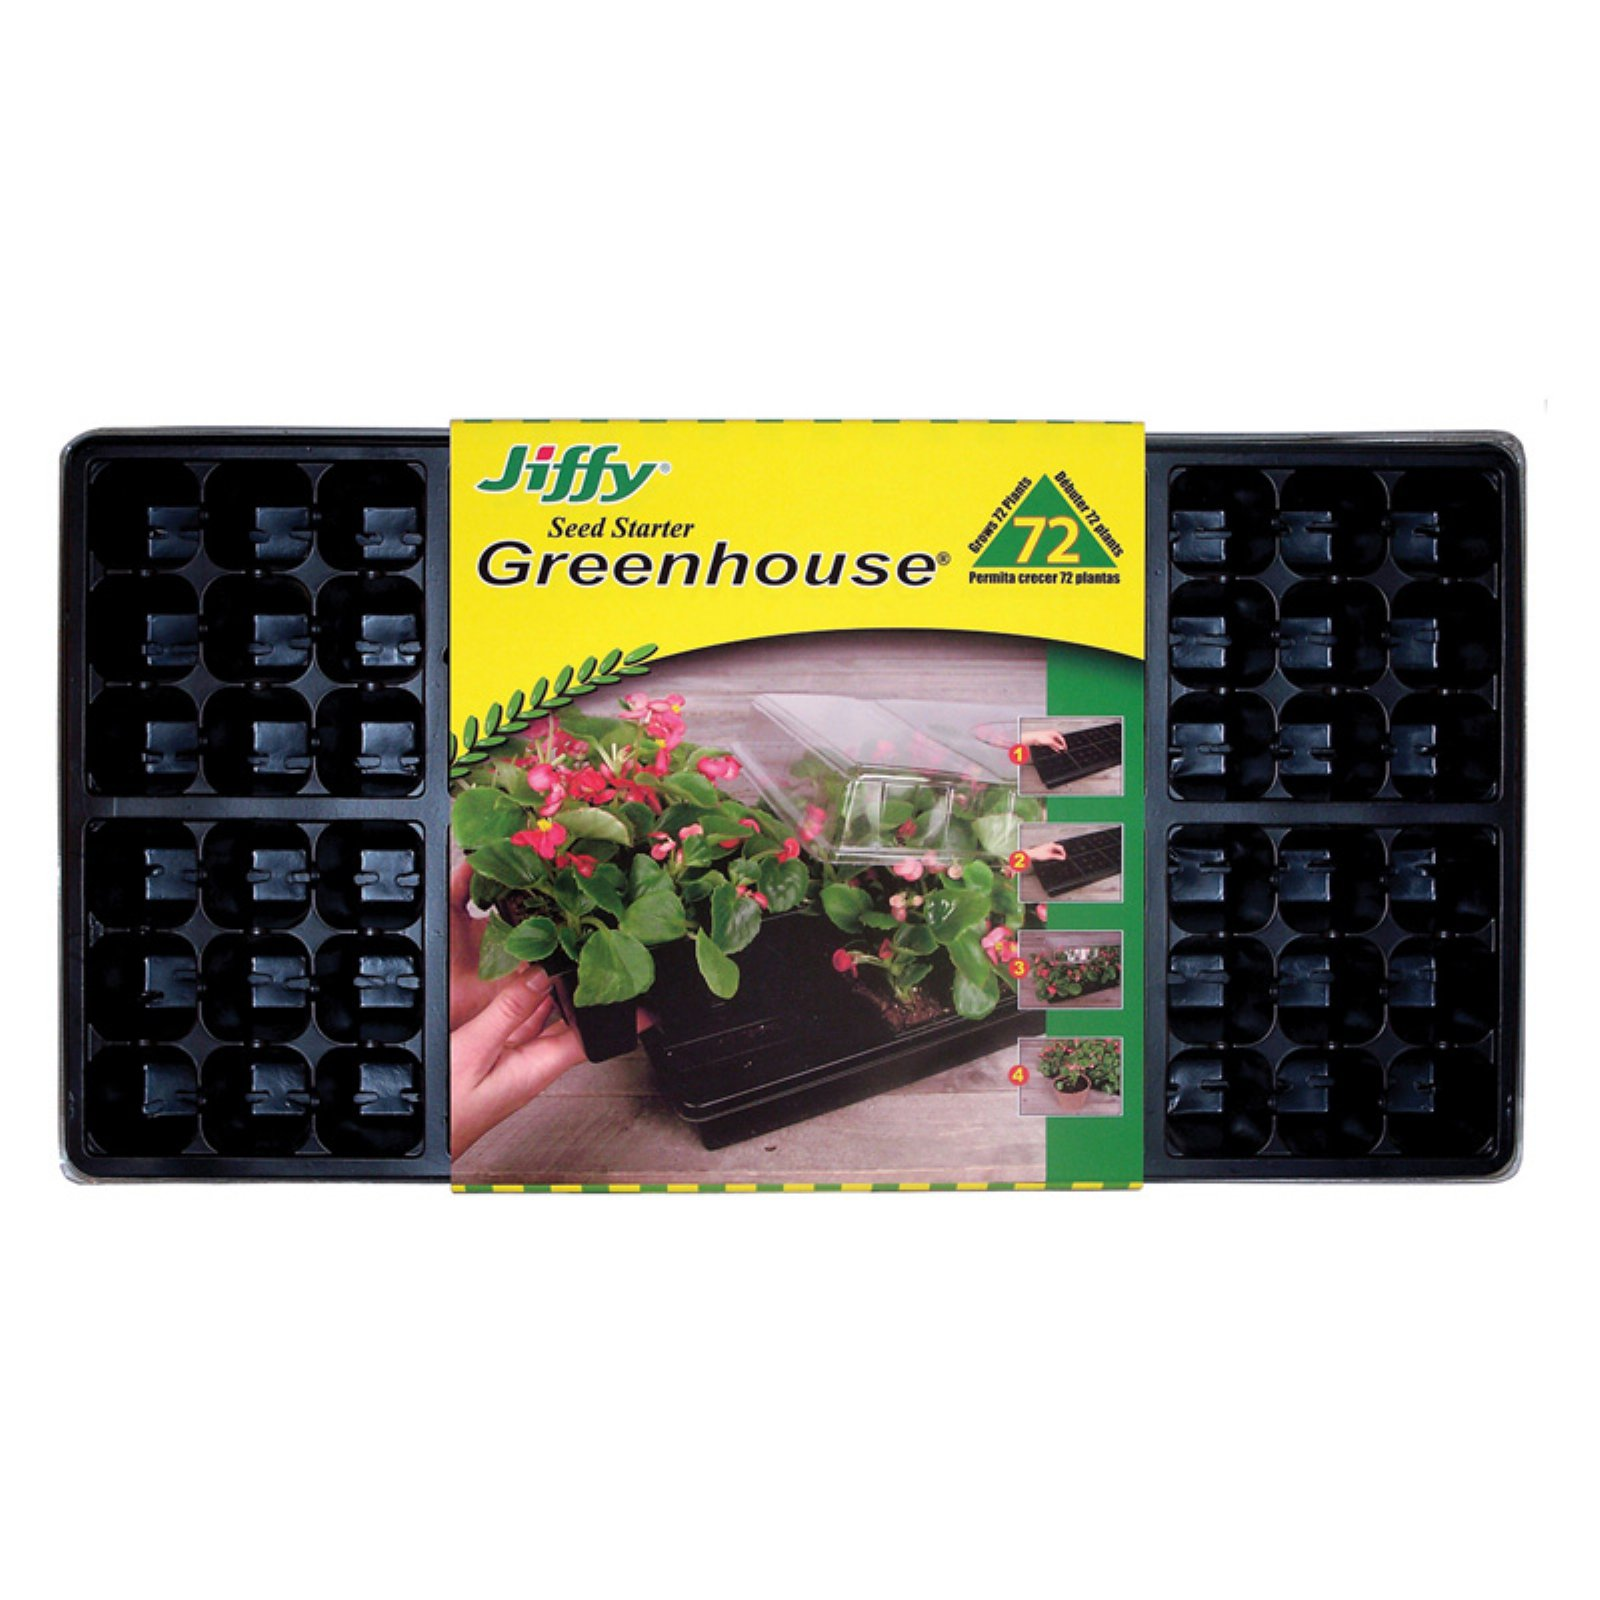 Jiffy T72H Jiffy Easy Grow Greenhouse